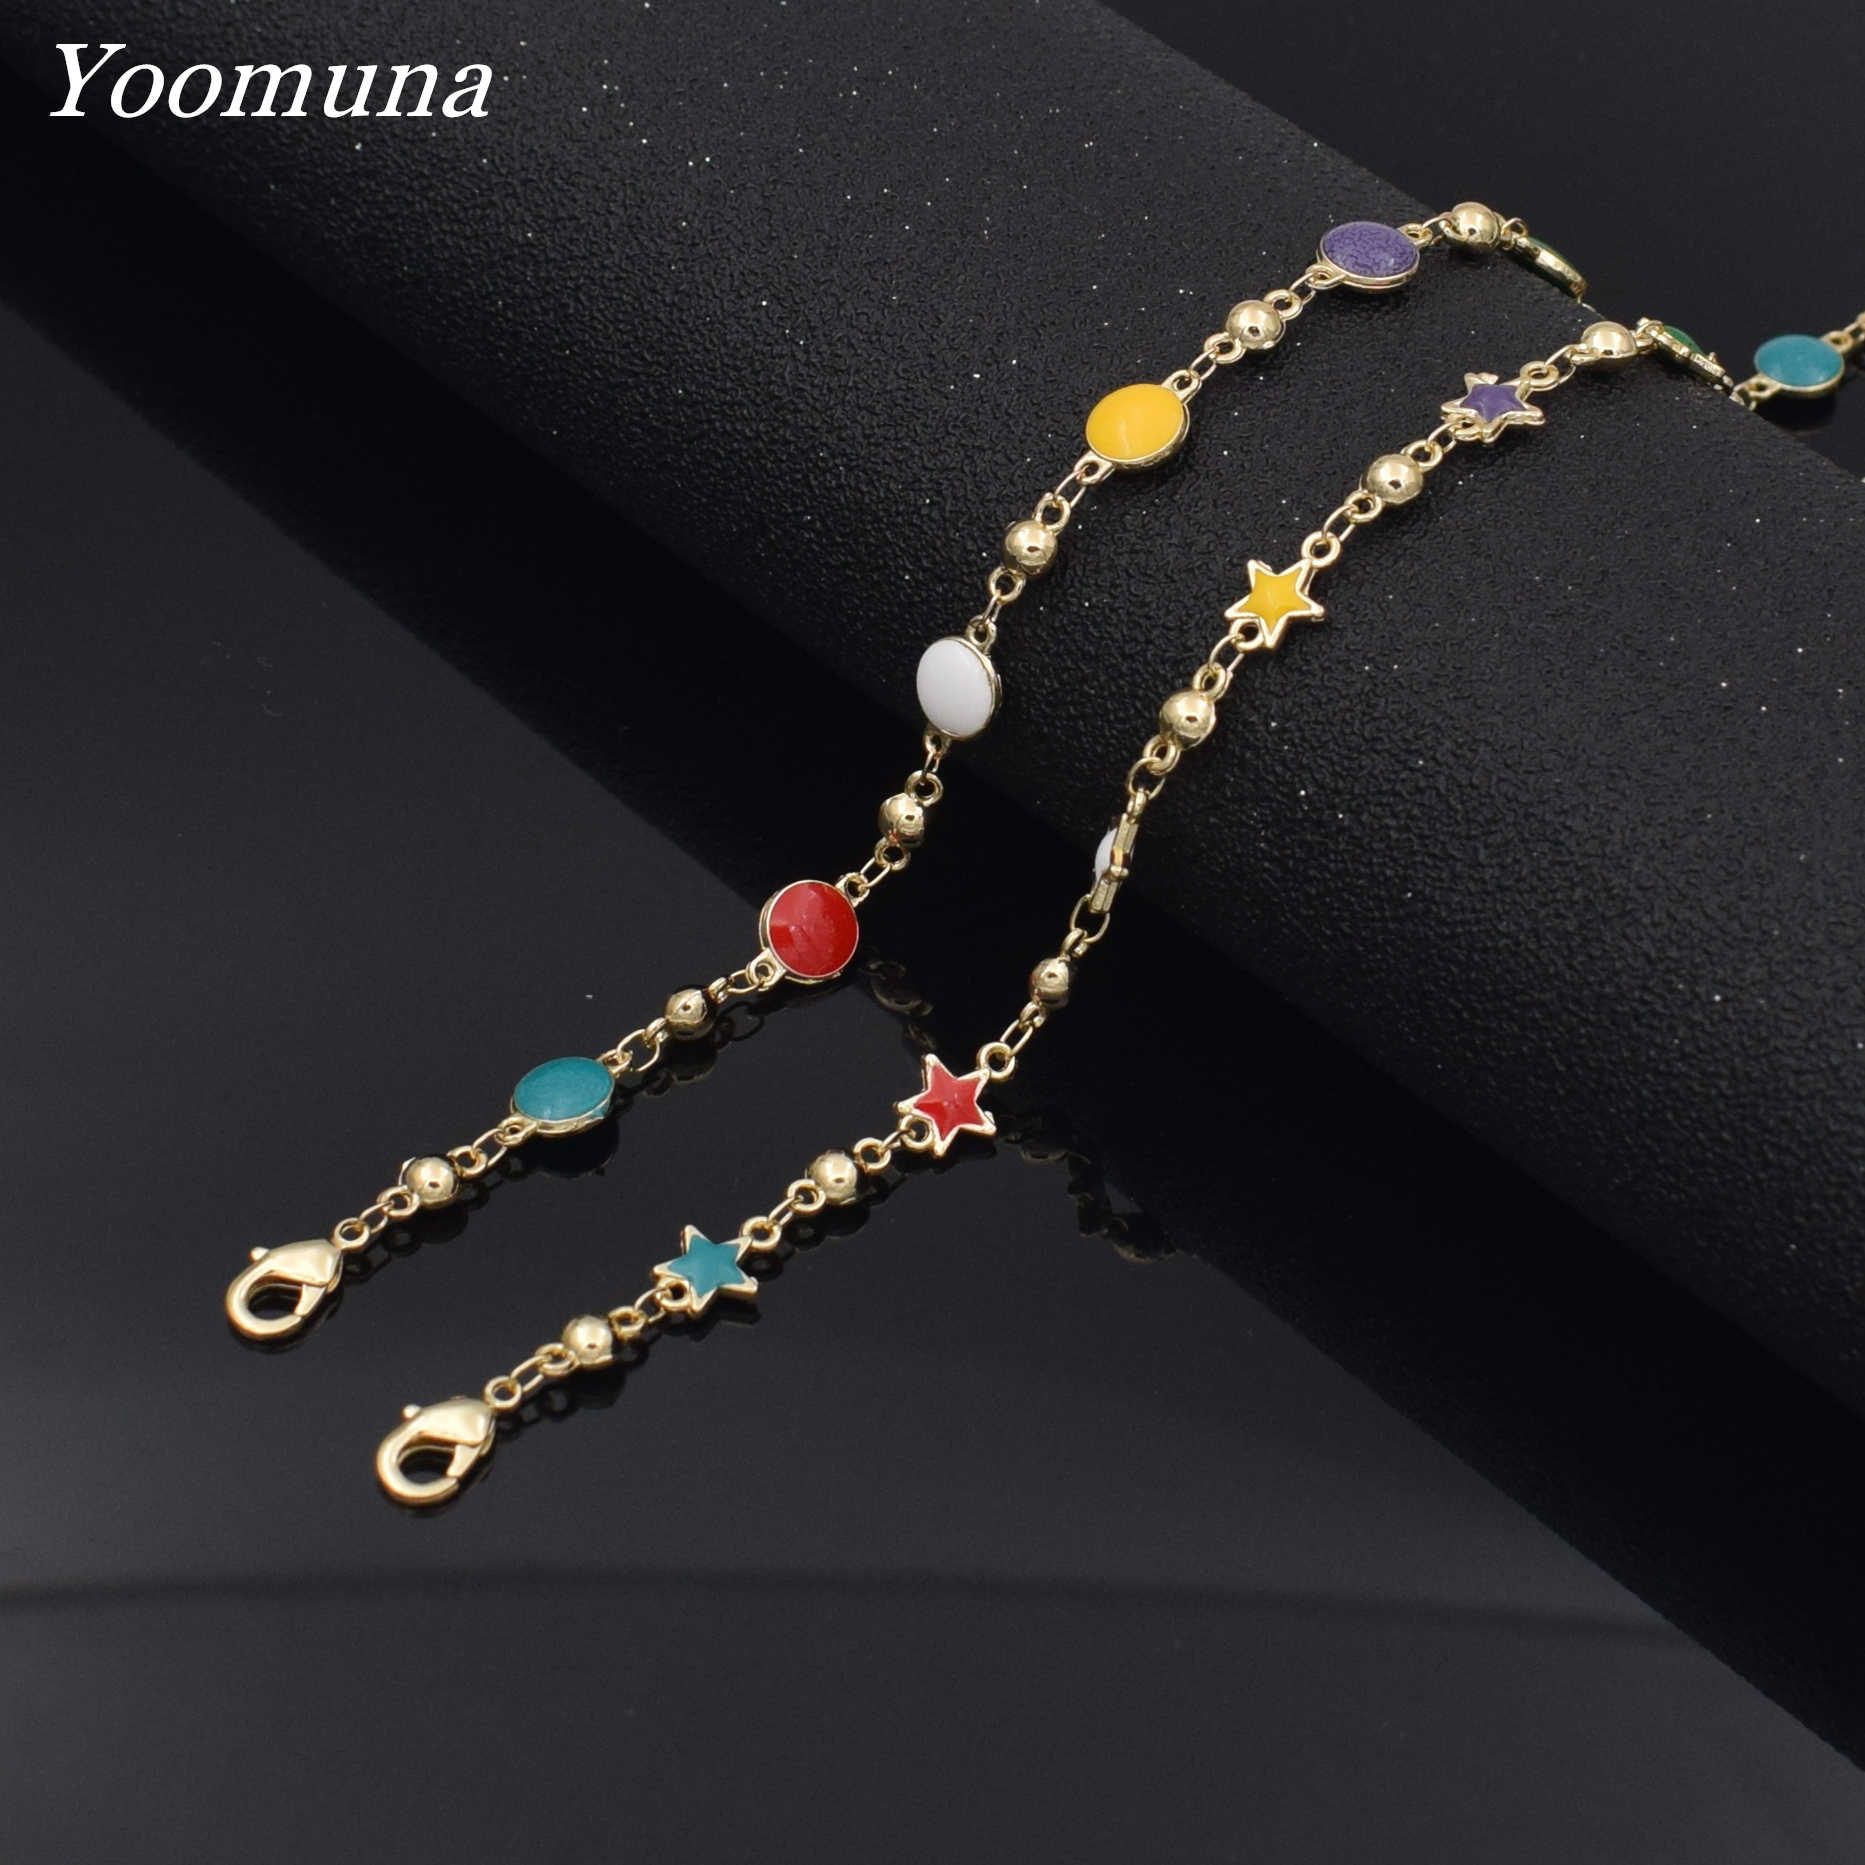 Popular rainbow color cute star CZ link chain choker necklaces for women geometric charm delicate birthday gift necklace jewelry